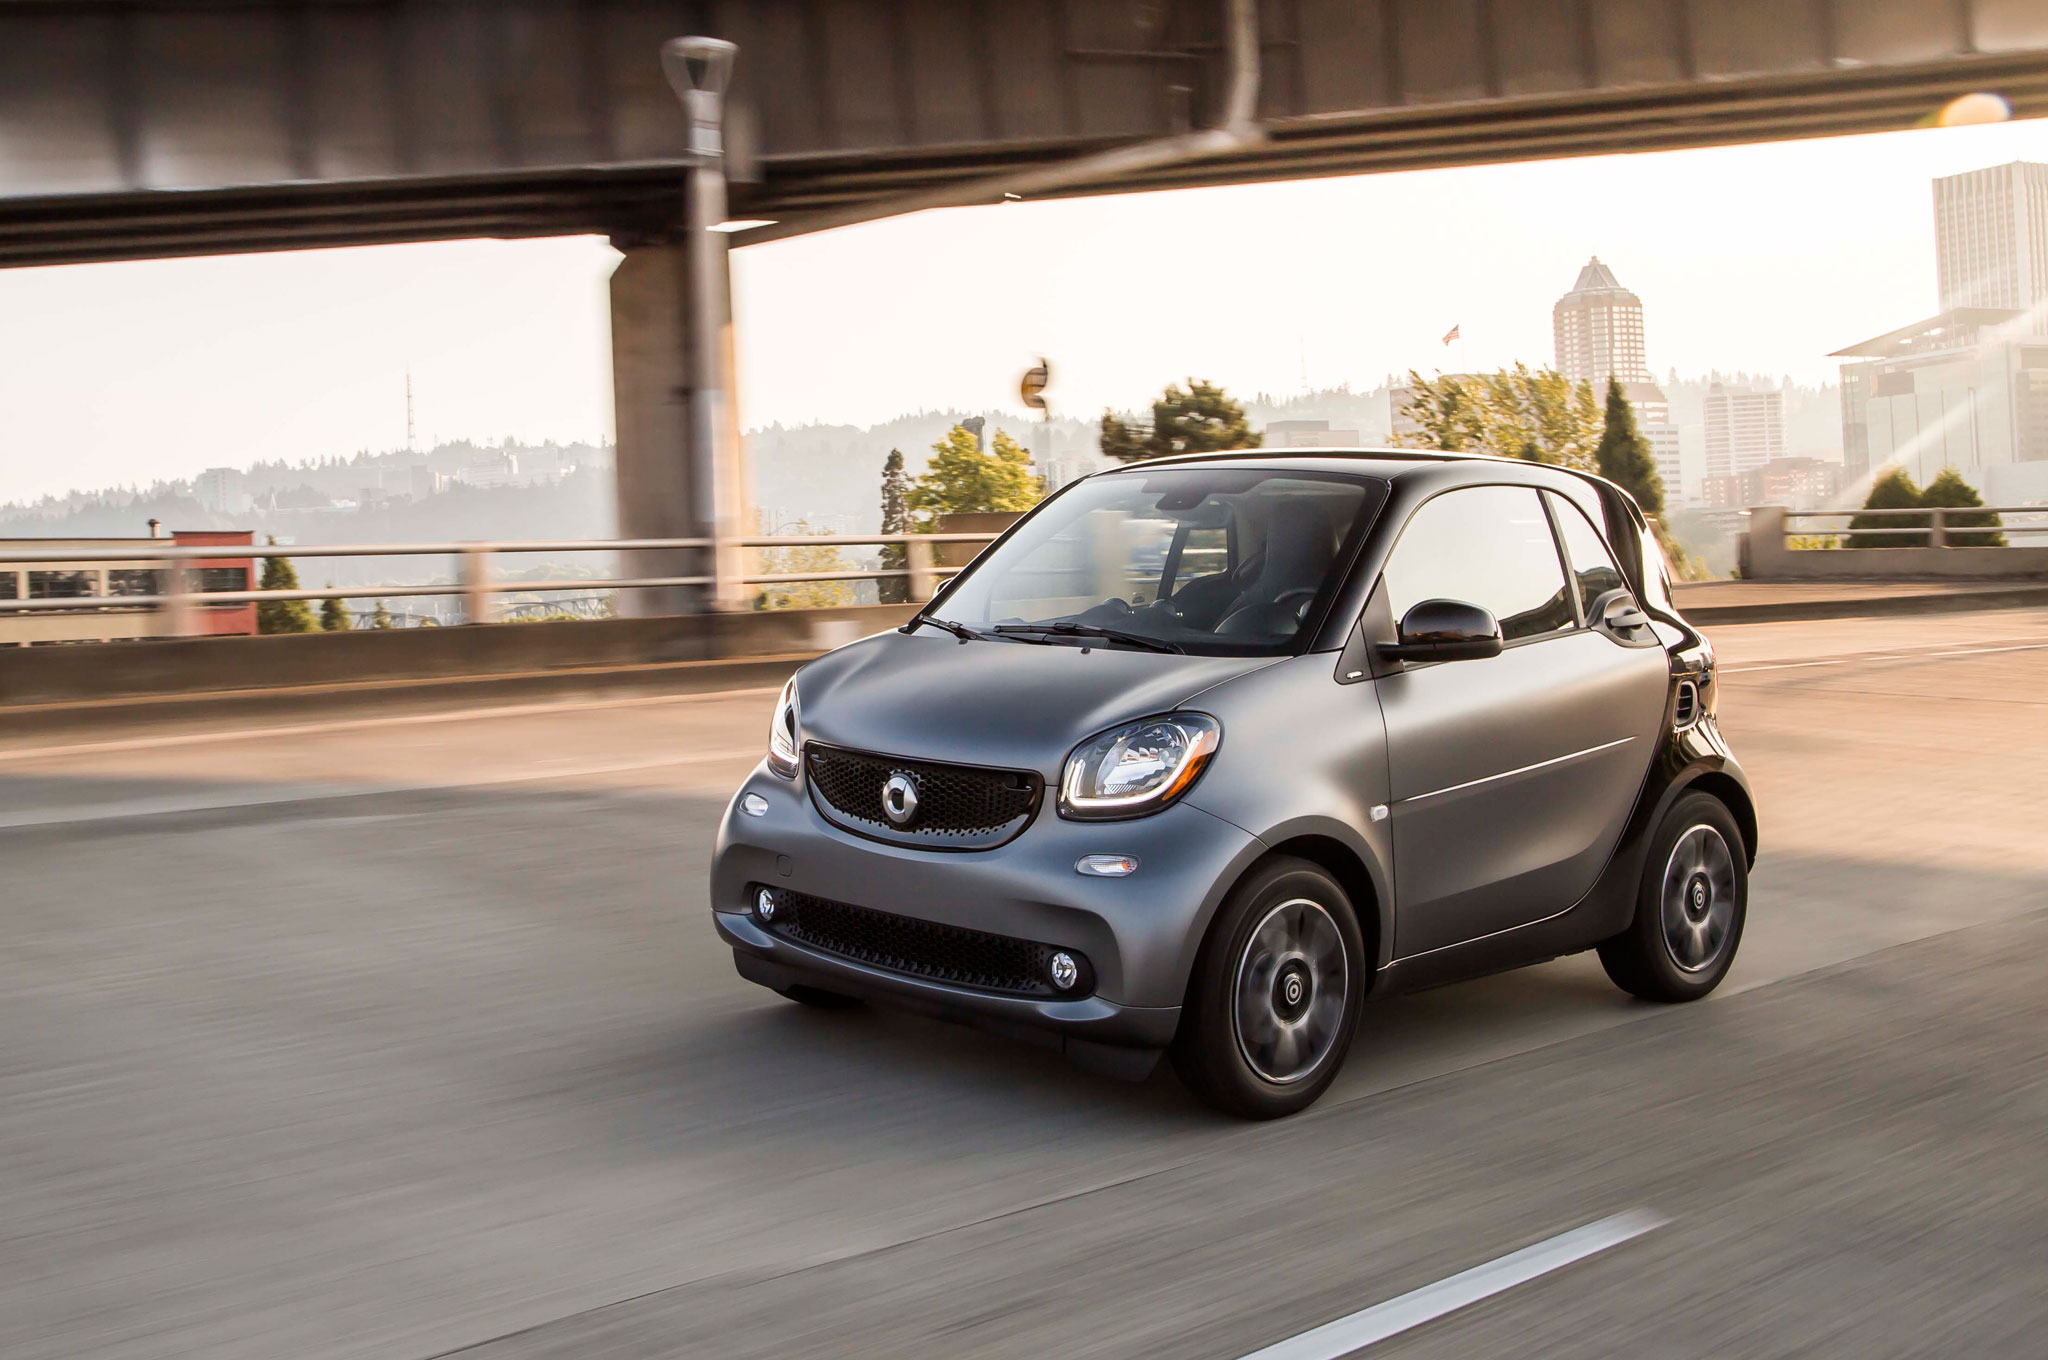 2016 smart fortwo specs 1137 cars performance reviews. Black Bedroom Furniture Sets. Home Design Ideas